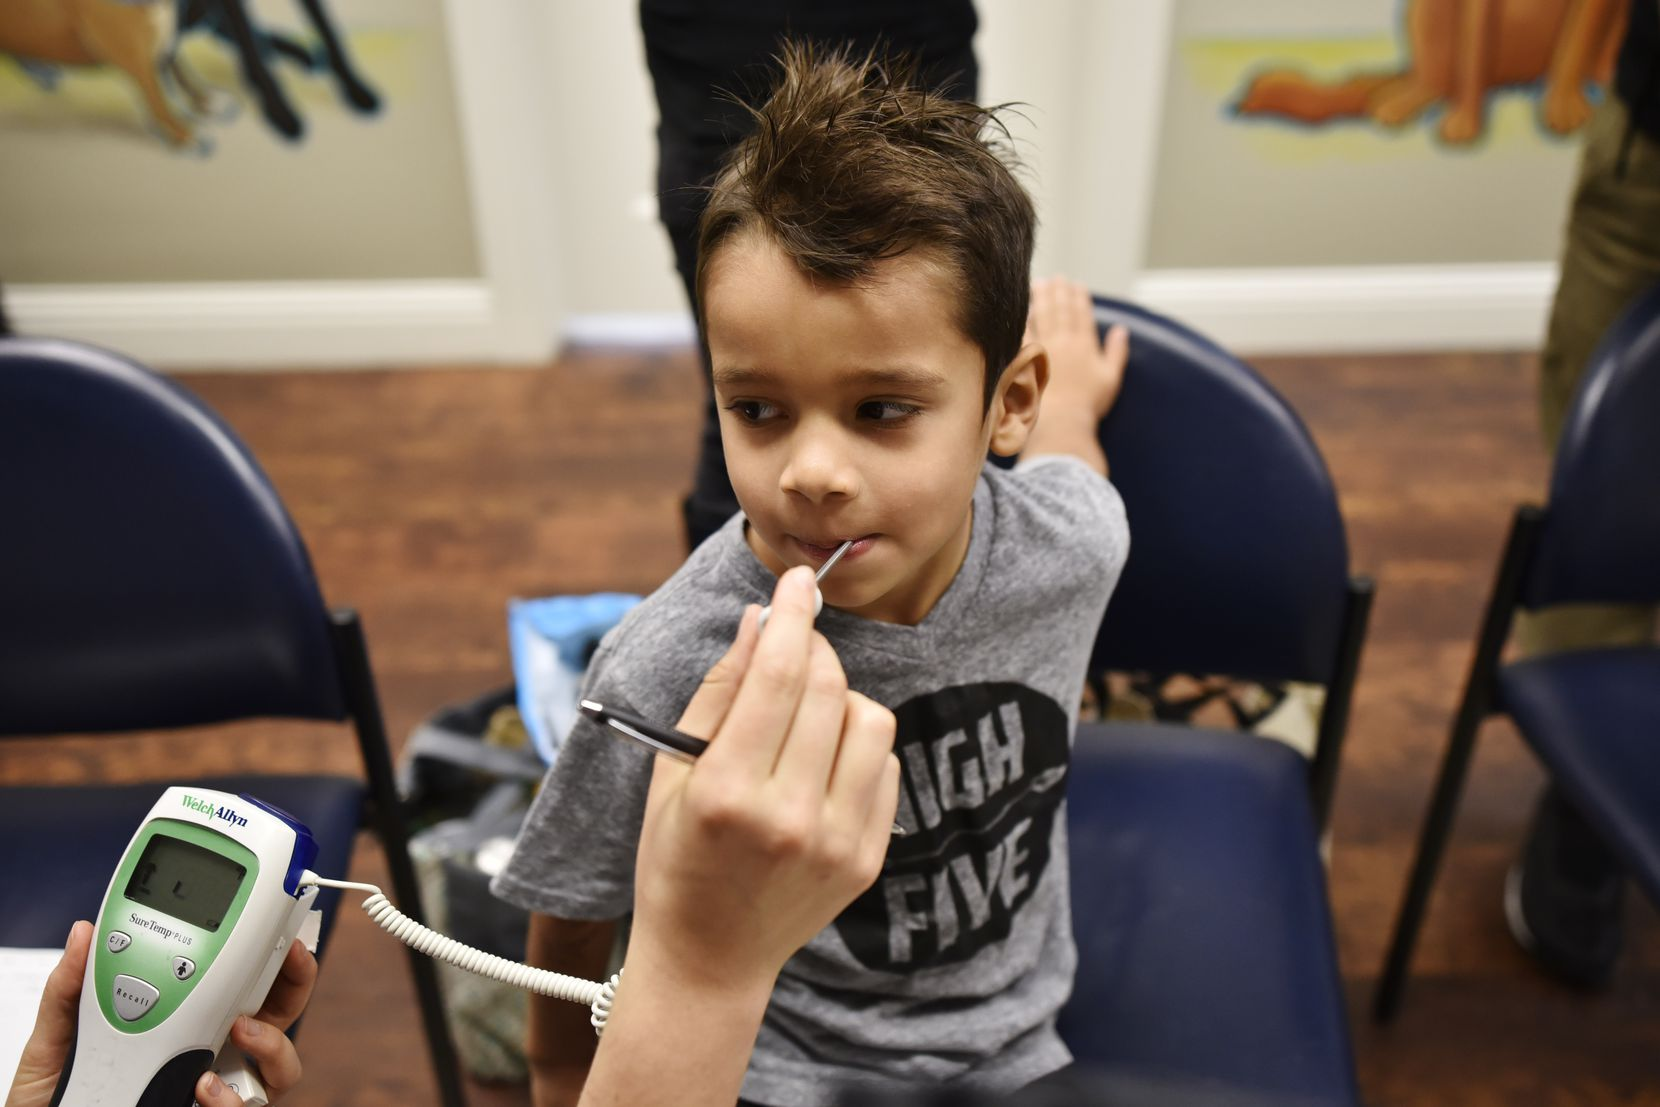 Samuel Bonilla had his vitals checked during an October visit to Agape Clinic, a private health center where no one is turned away because of tight finances.